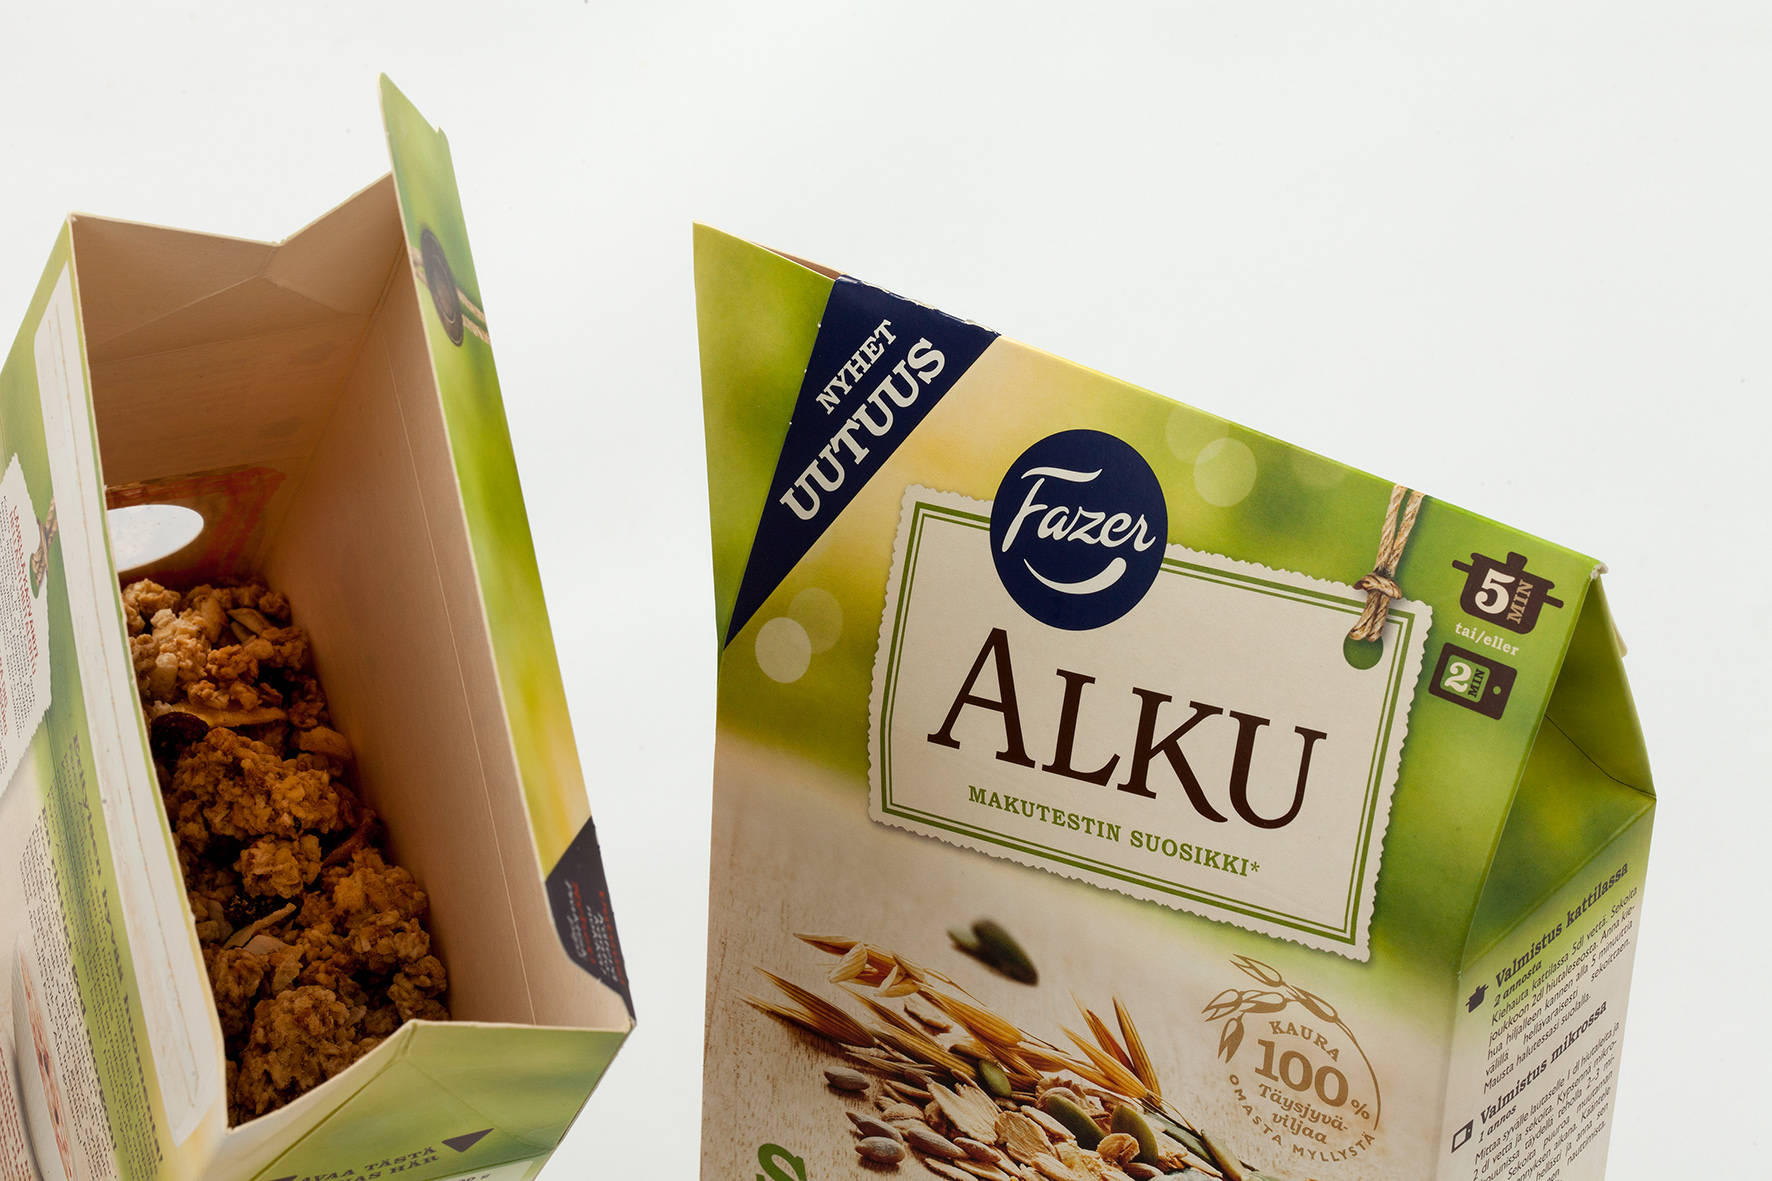 Fazer Alku new mill products